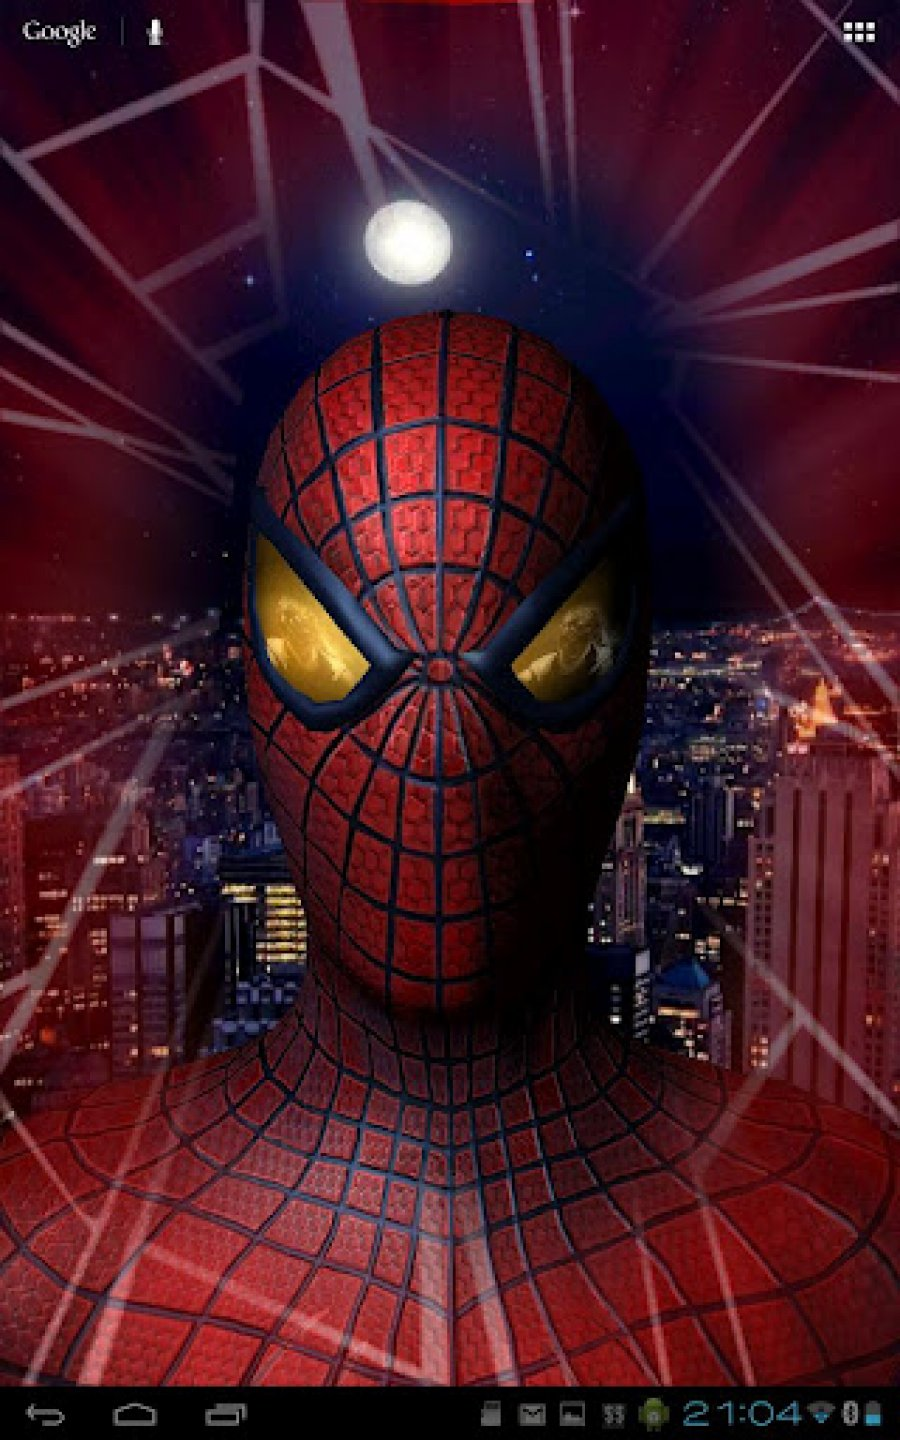 The Amazing Spider Man 2 Live Wallpaper - Spiderman Wallpaper 3d Android - HD Wallpaper